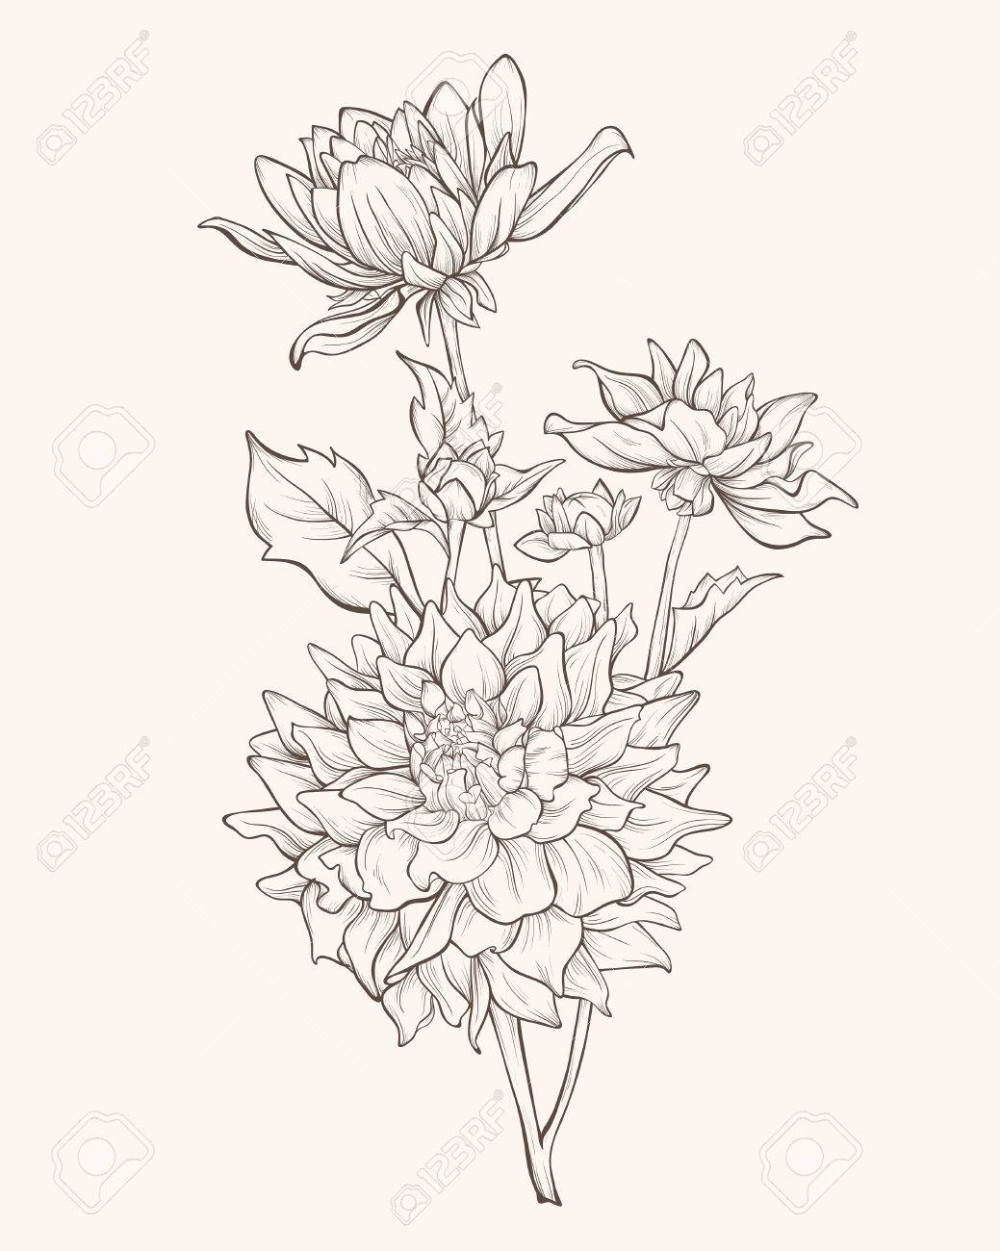 Dahlia Flower Isolated On White Background In 2020 Dahlia Flower Tattoos Flower Line Drawings Flower Tattoo Drawings